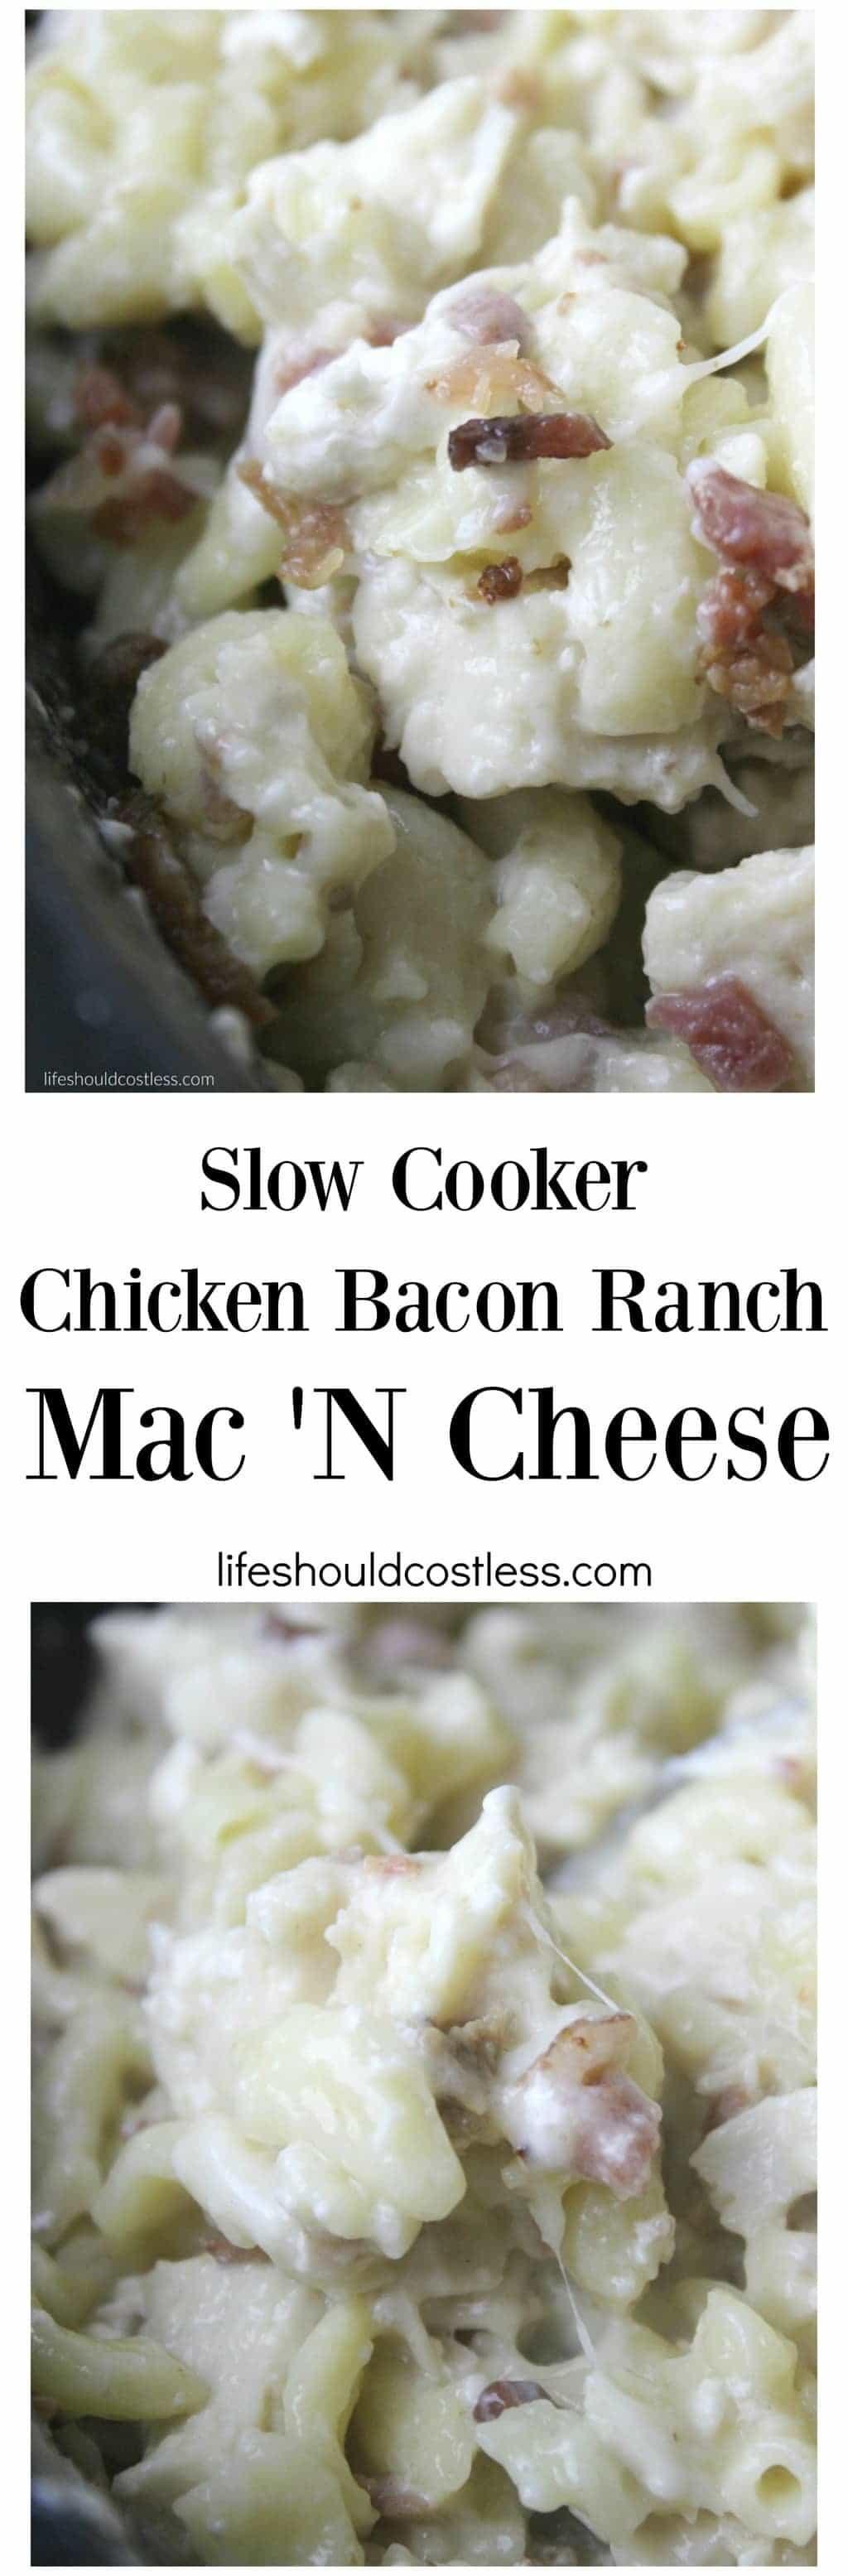 Slow Cooker Chicken Bacon Ranch Mac N' Cheese.